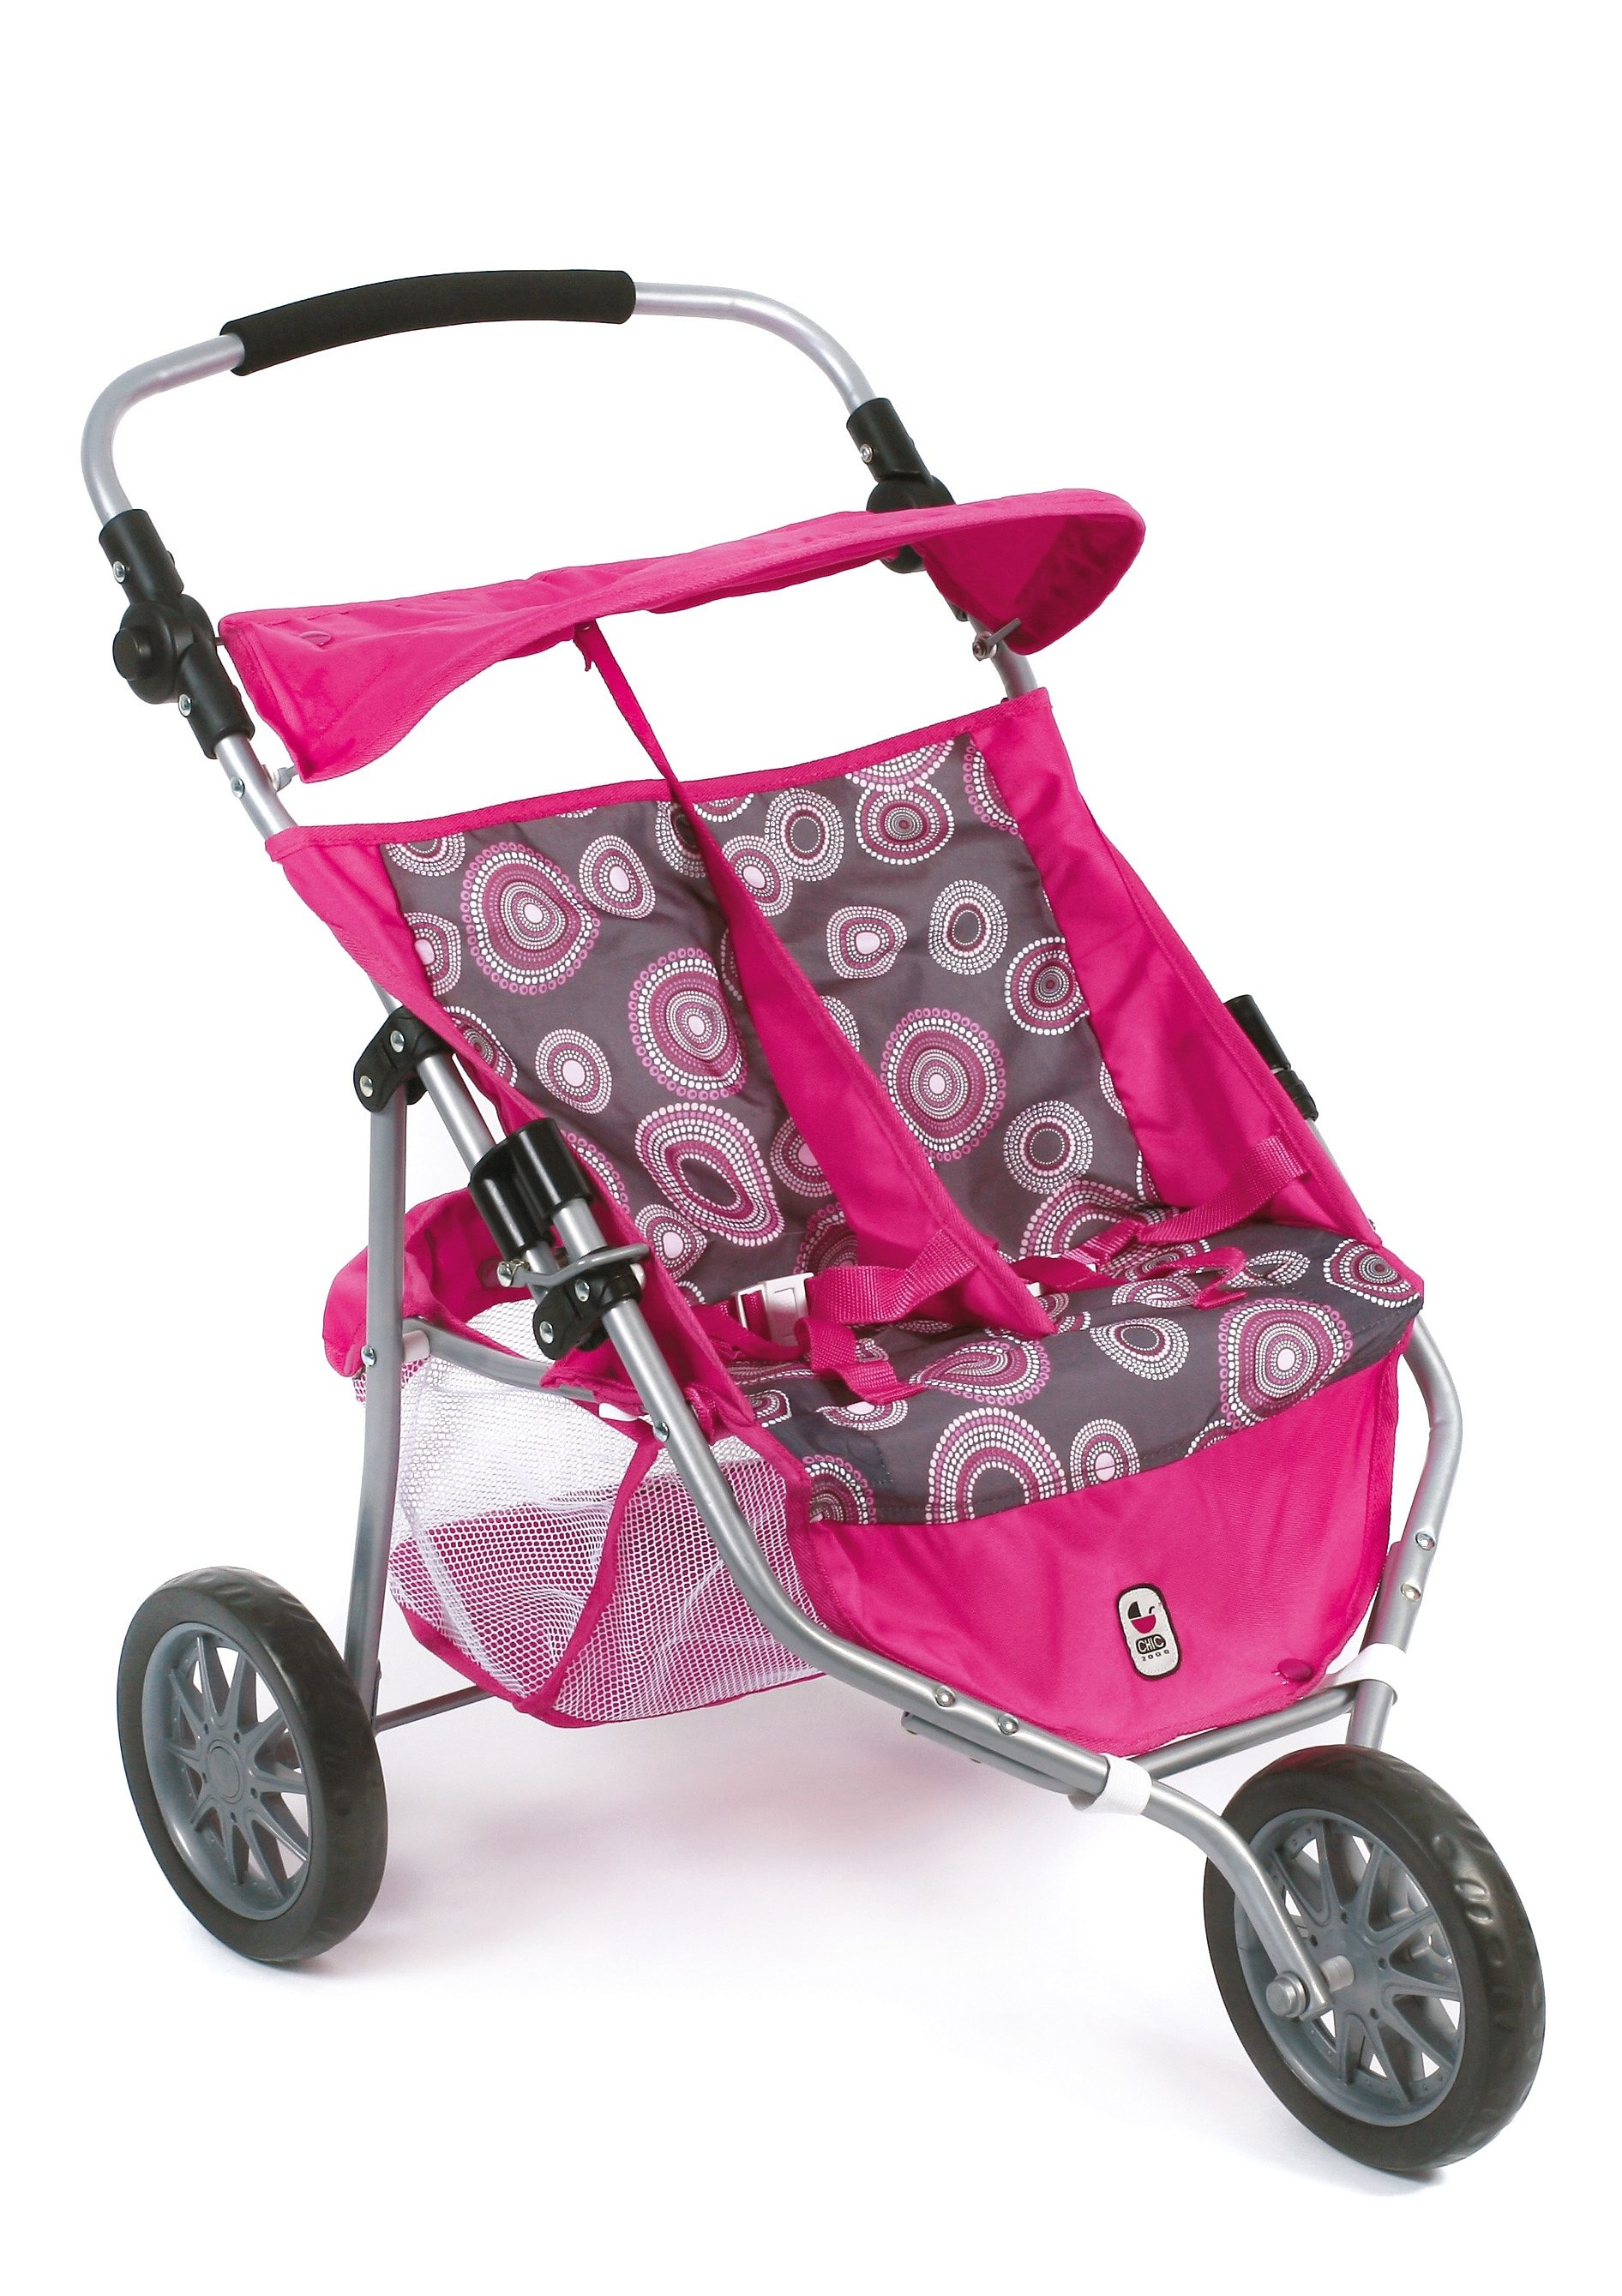 CHIC2000 3-Rad-Puppen-Buggy, »Zwillings-Jogger, Hot pink«